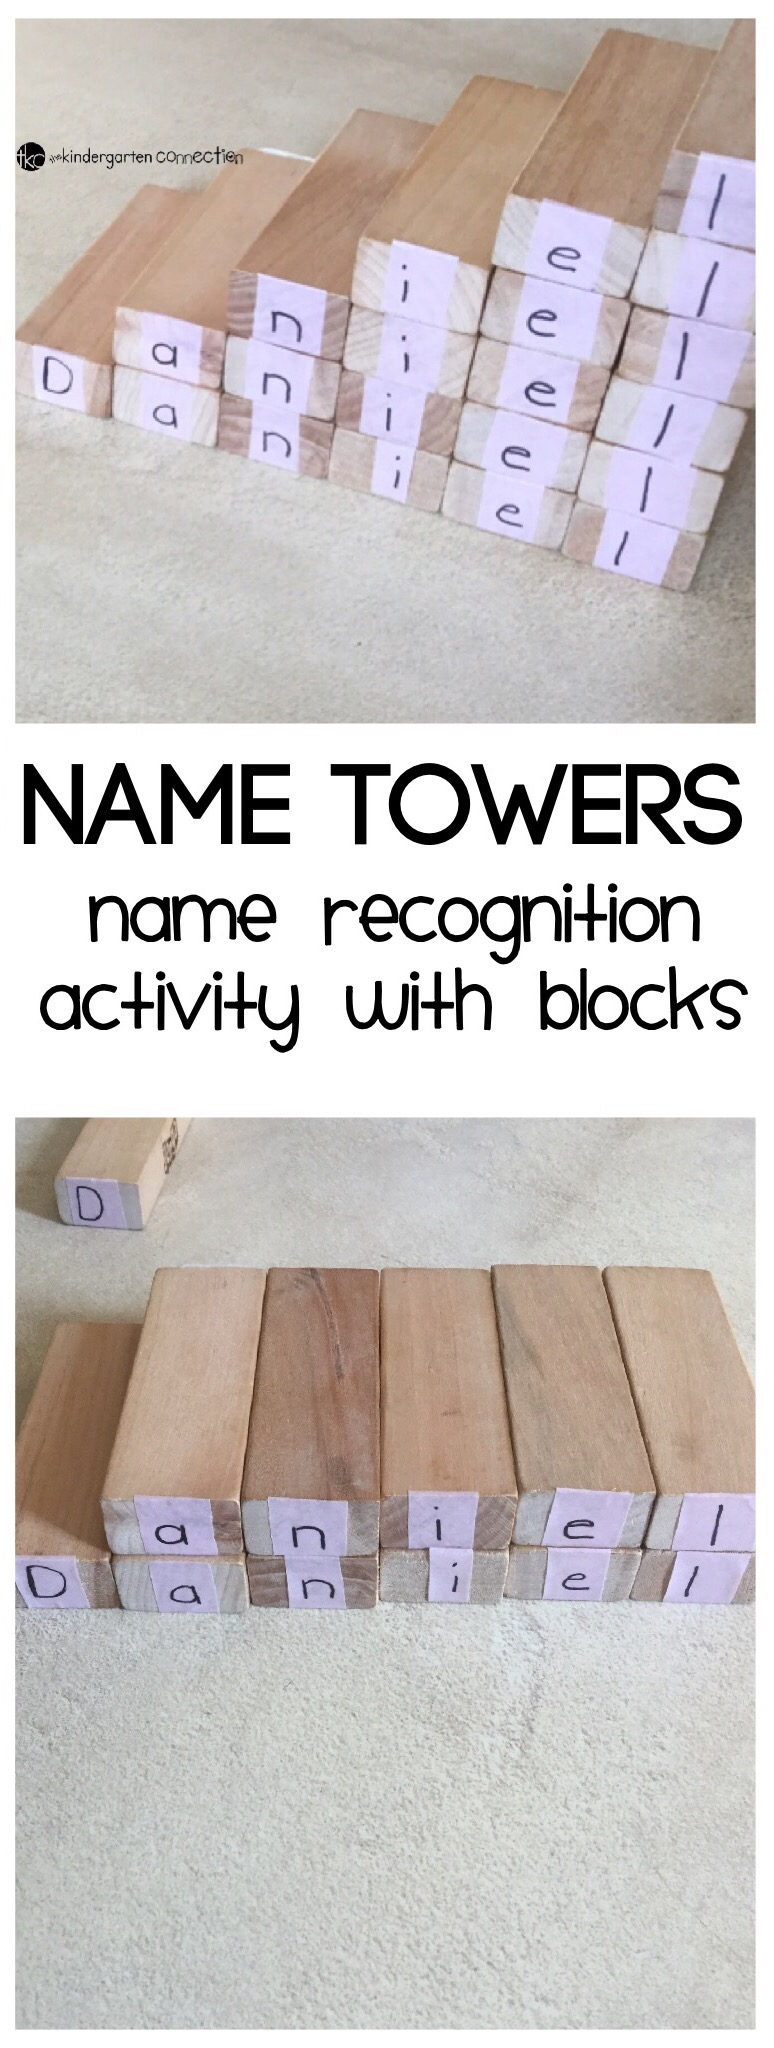 Do you have blocks laying around? Perhaps it is wooden building blocks or blocks from a game like Jenga. Use Jenga blocks for this fun name or sight word recognition activity, name towers!